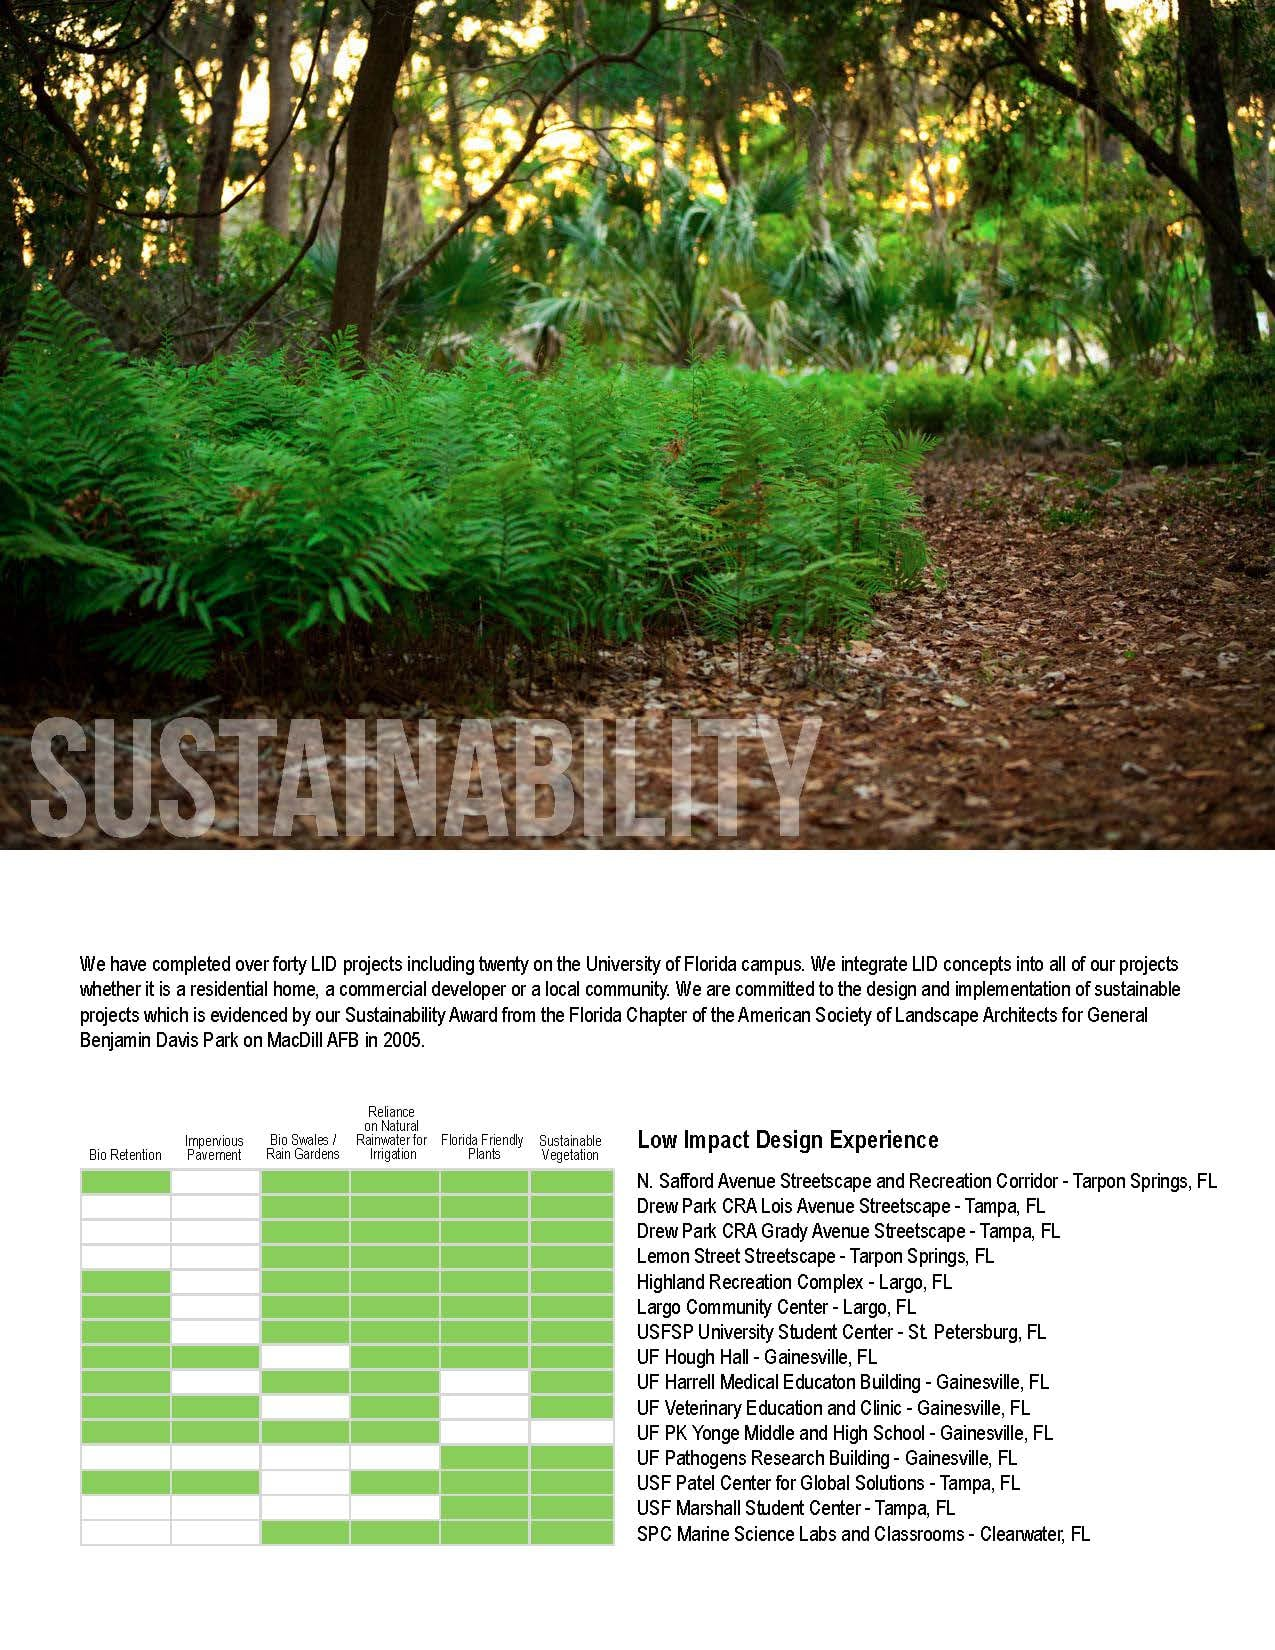 Copy of Sustainability.jpg